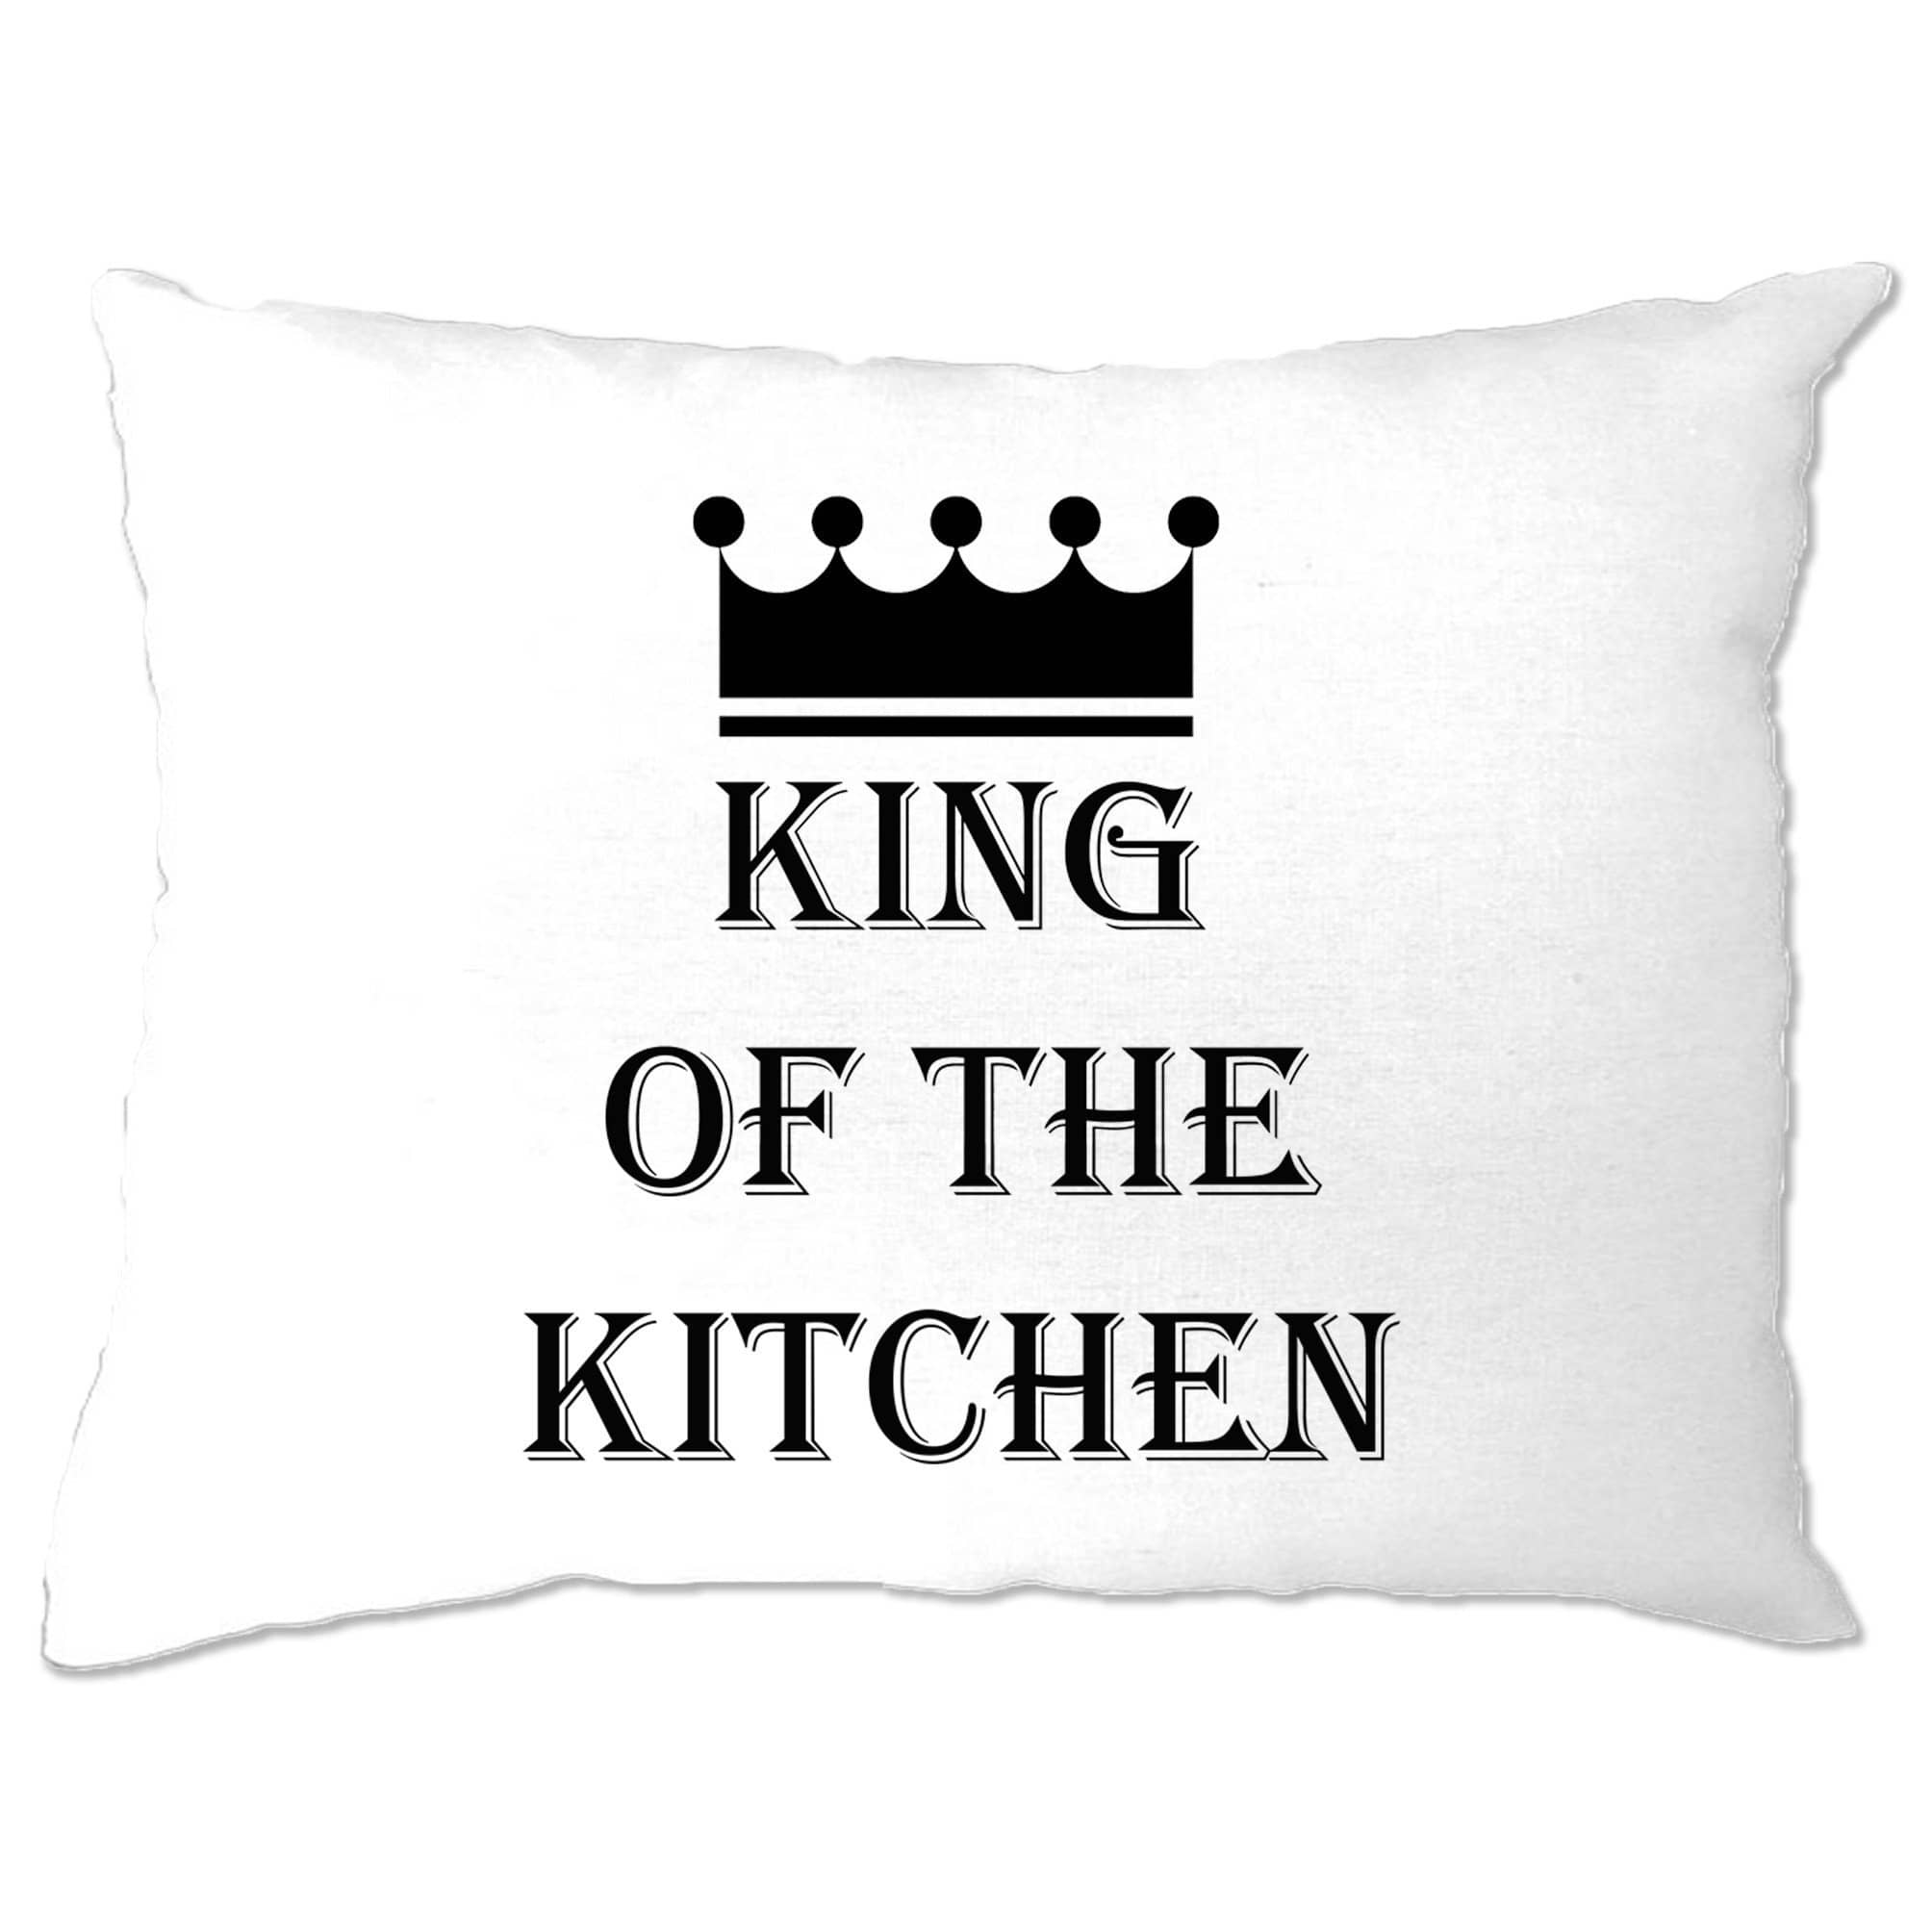 Chef's Cooking Pillow Case King Of The Kitchen Slogan